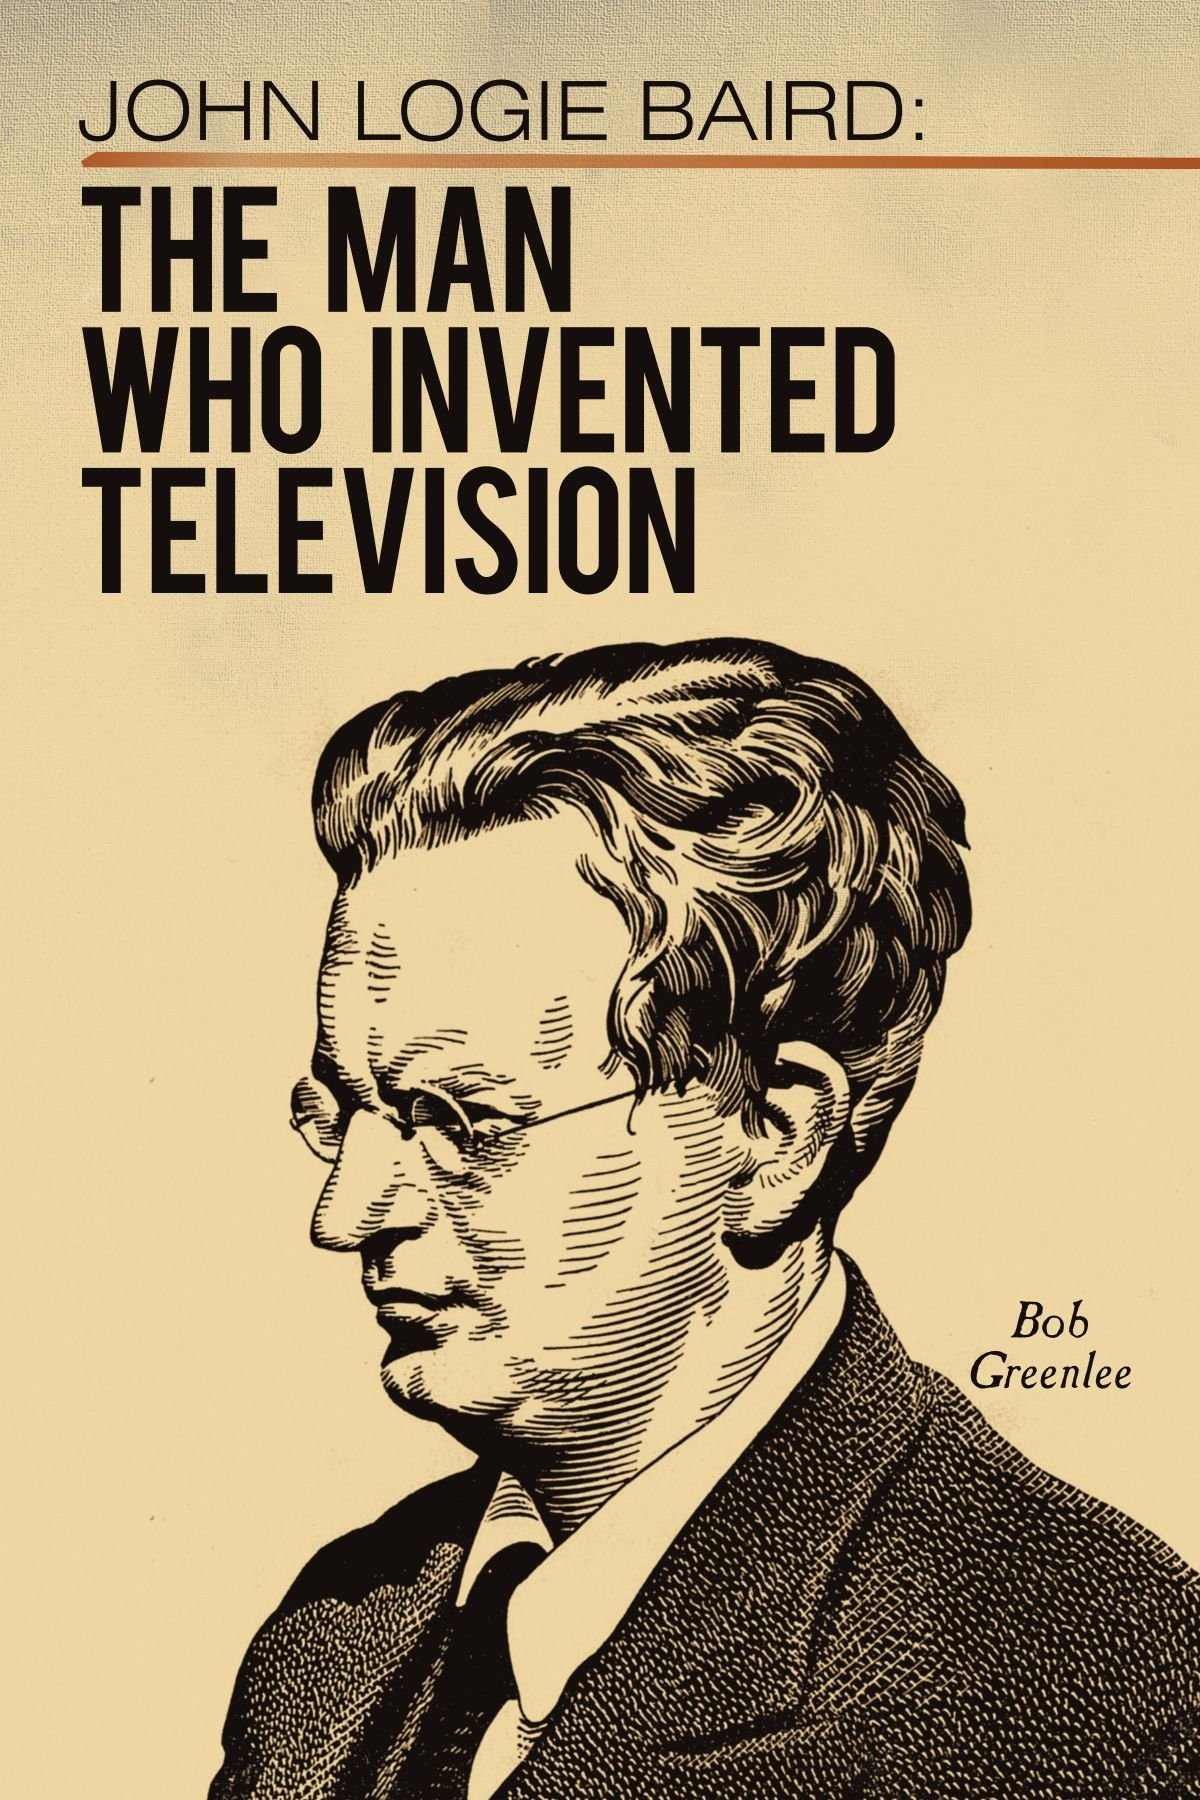 john logie baird the man who invented television bob greenlee